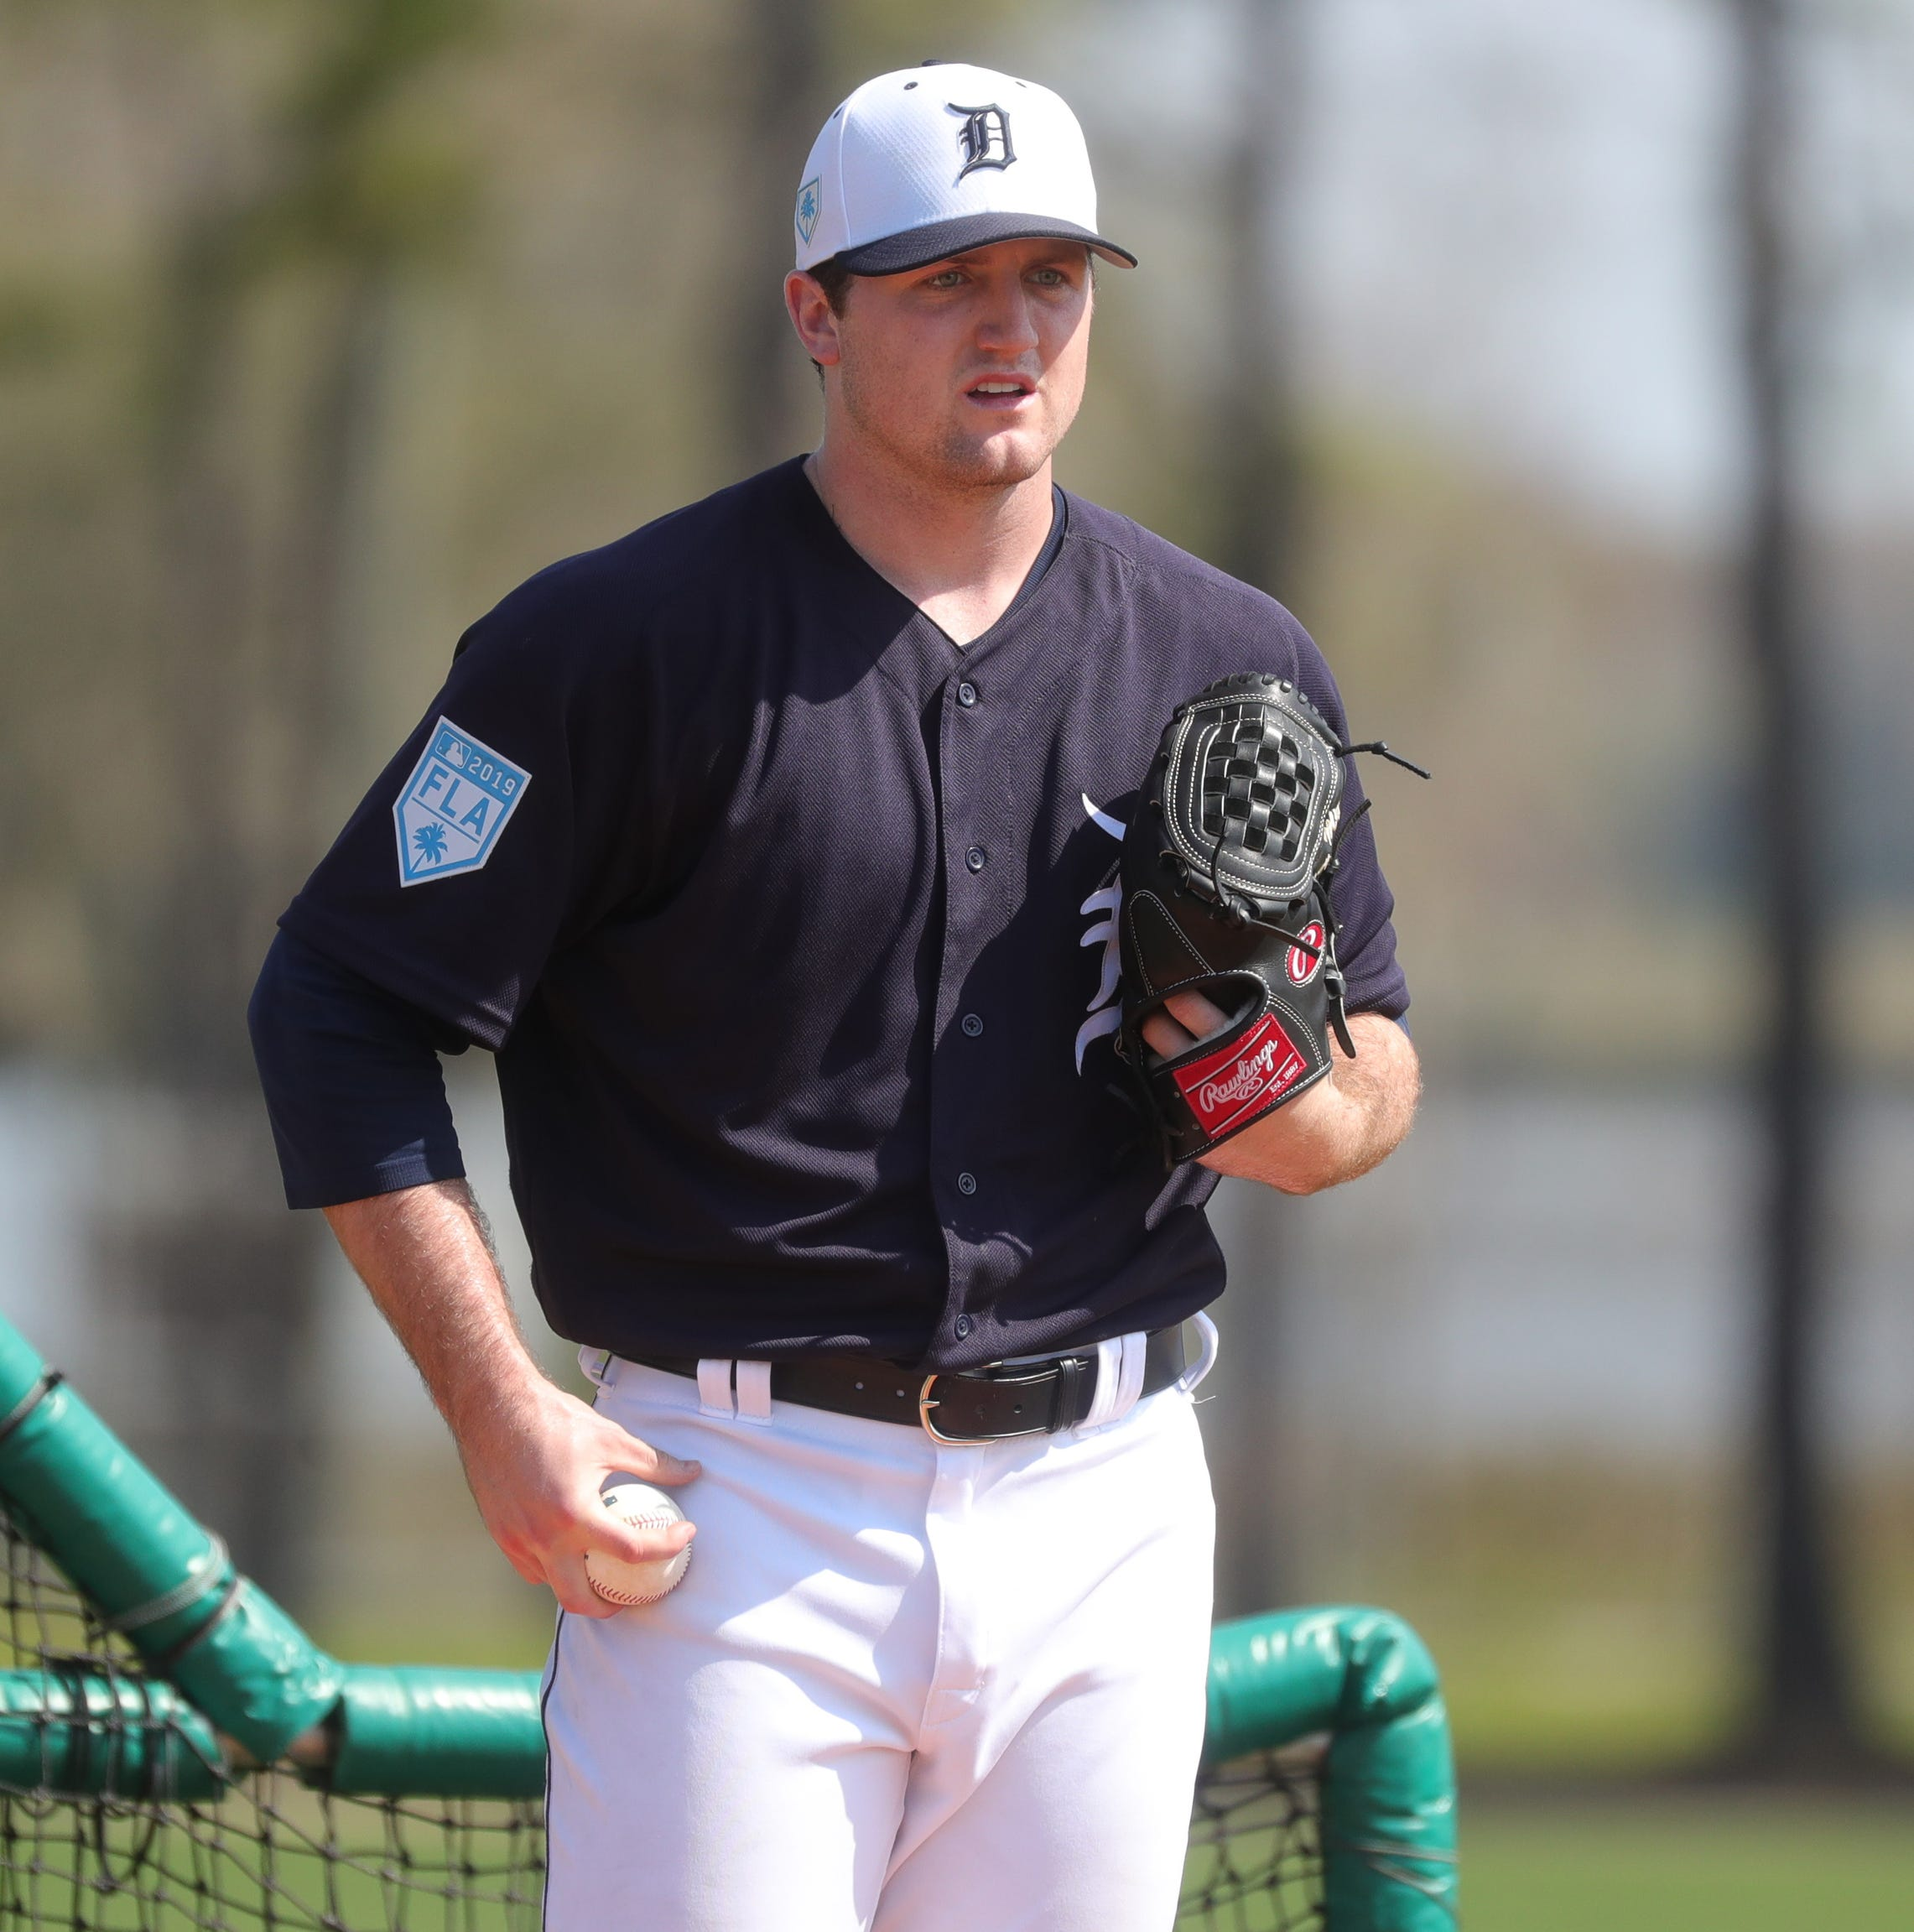 Detroit Tigers spring training observations: 'Big 3' prospects stand out